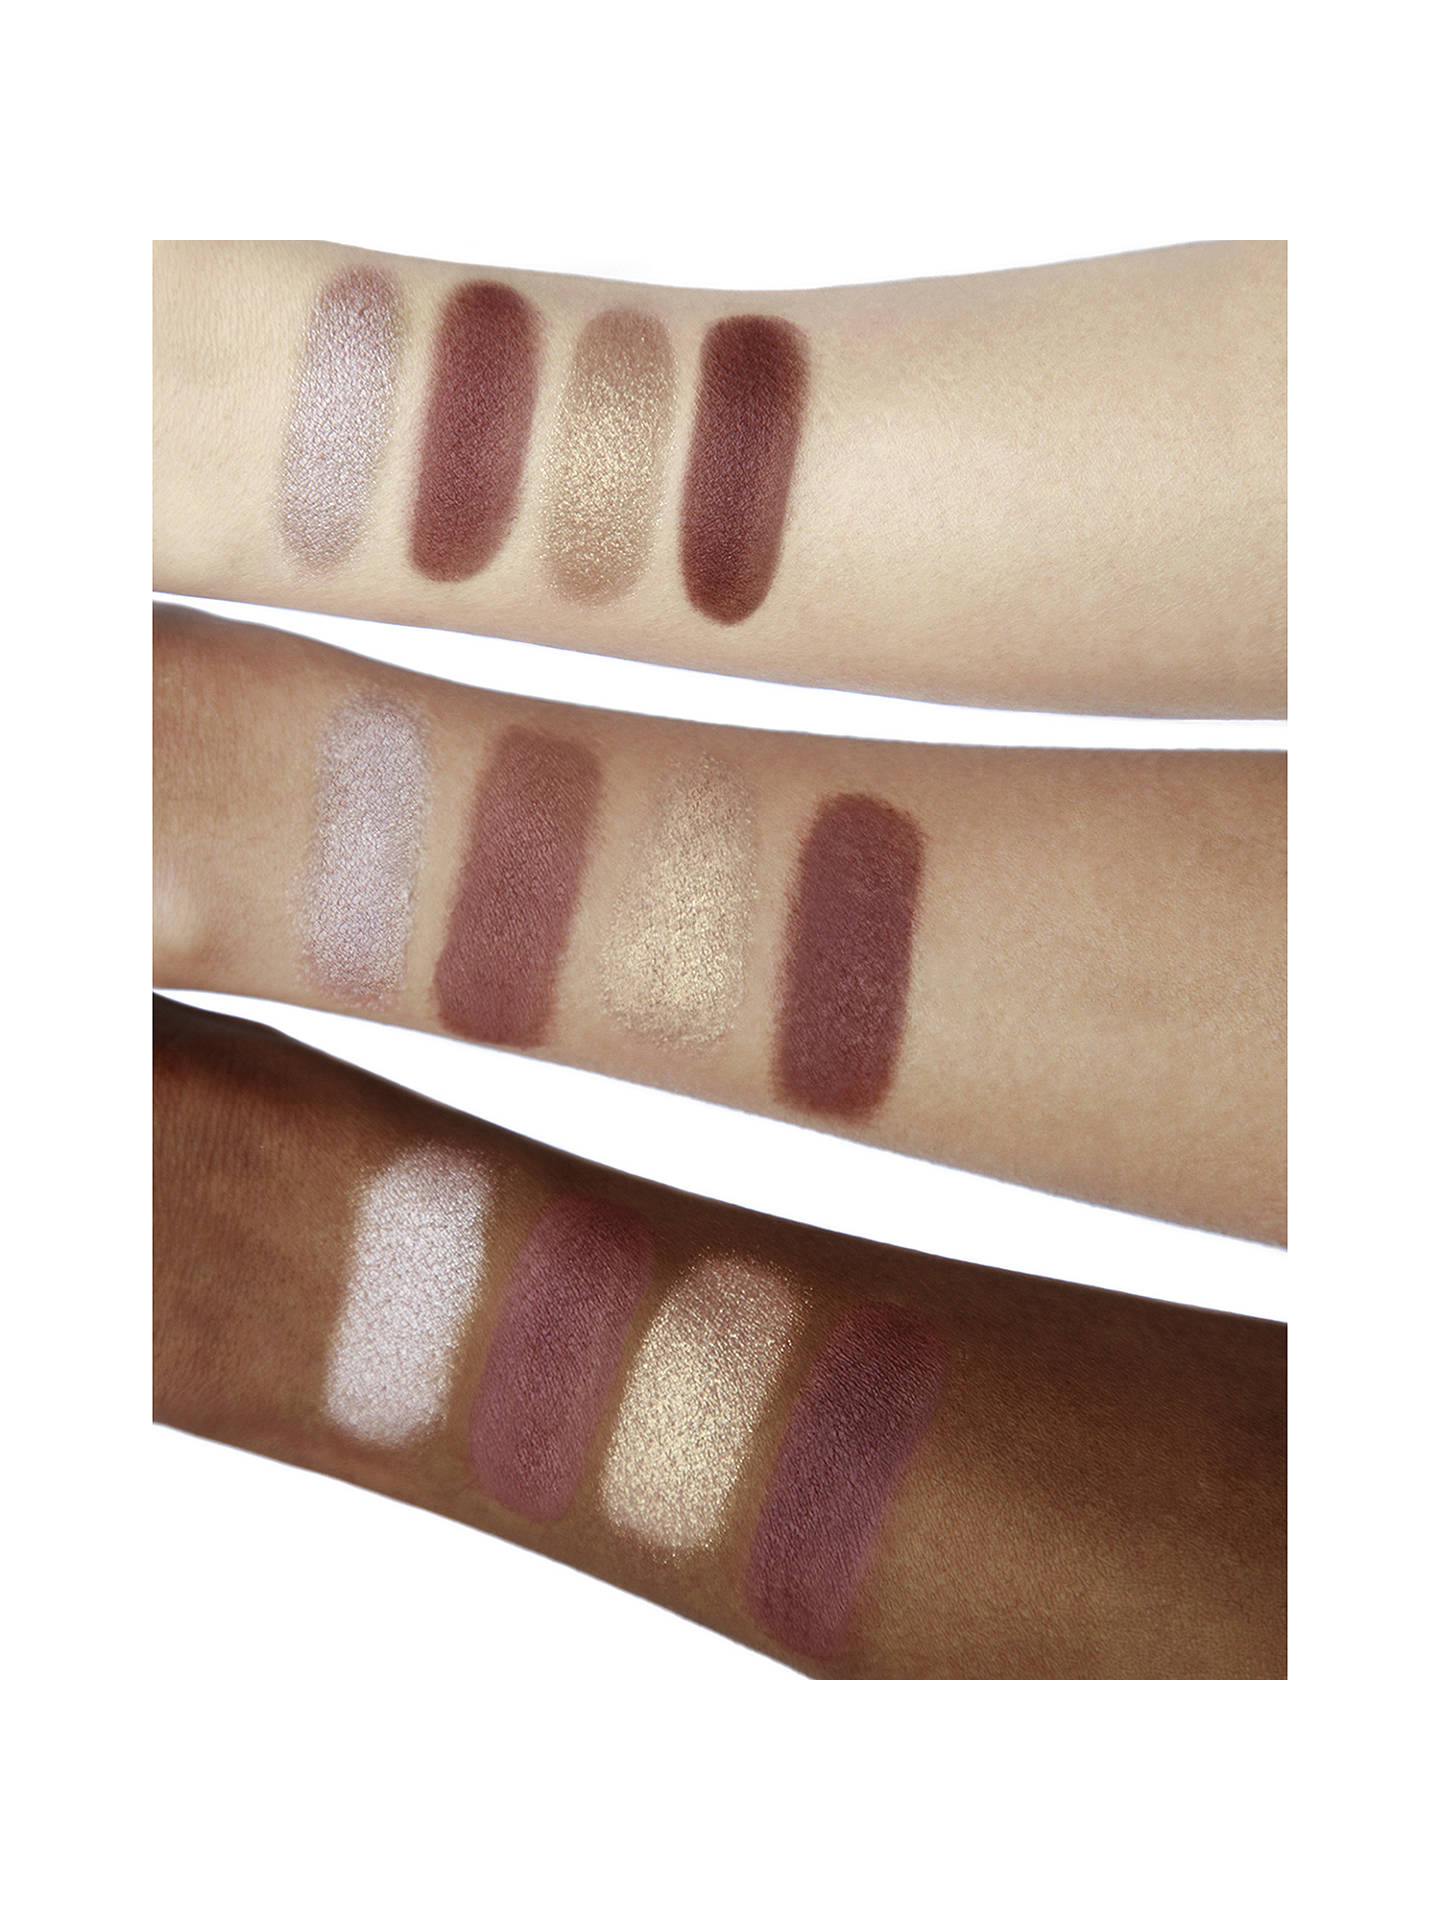 BuyCharlotte Tilbury Luxury Palette, The Vintage Vamp Online at johnlewis.com